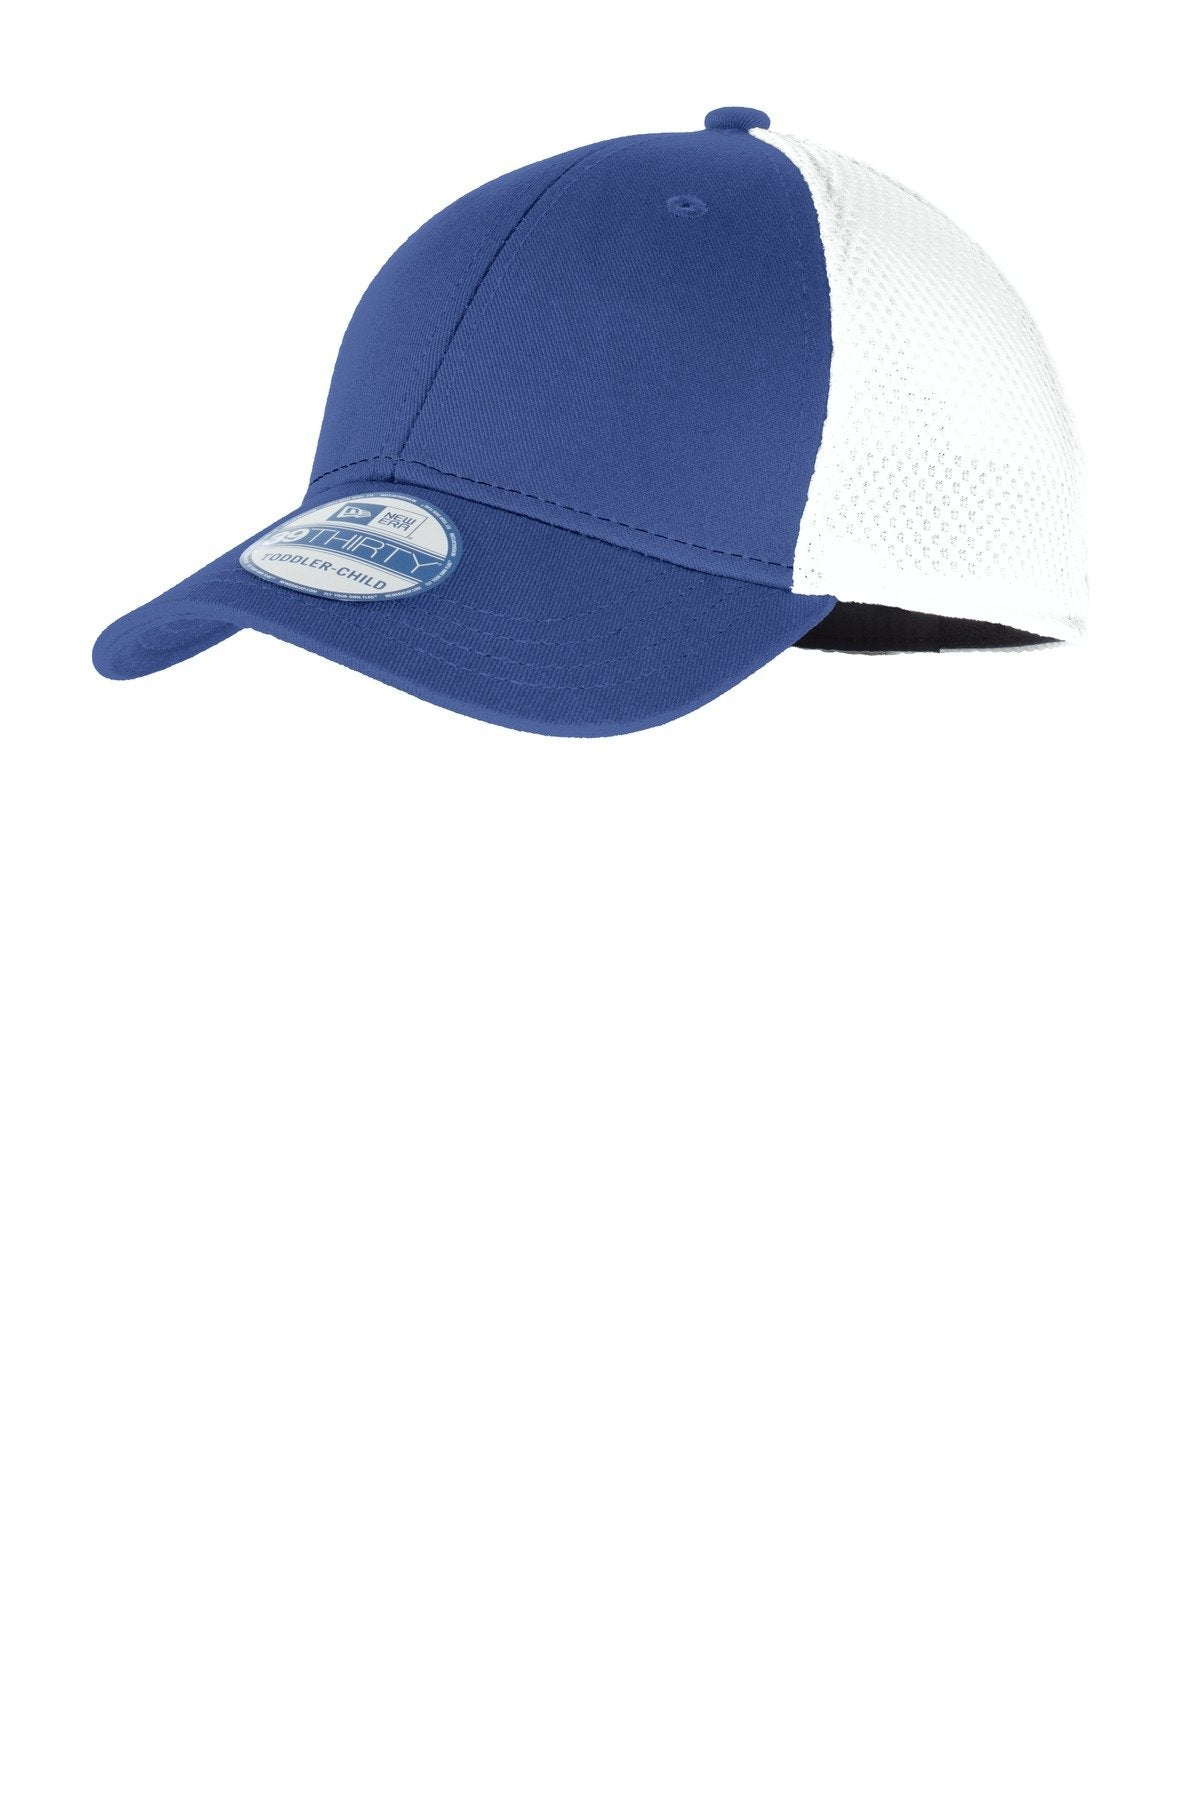 Royal/White - New Era NE302